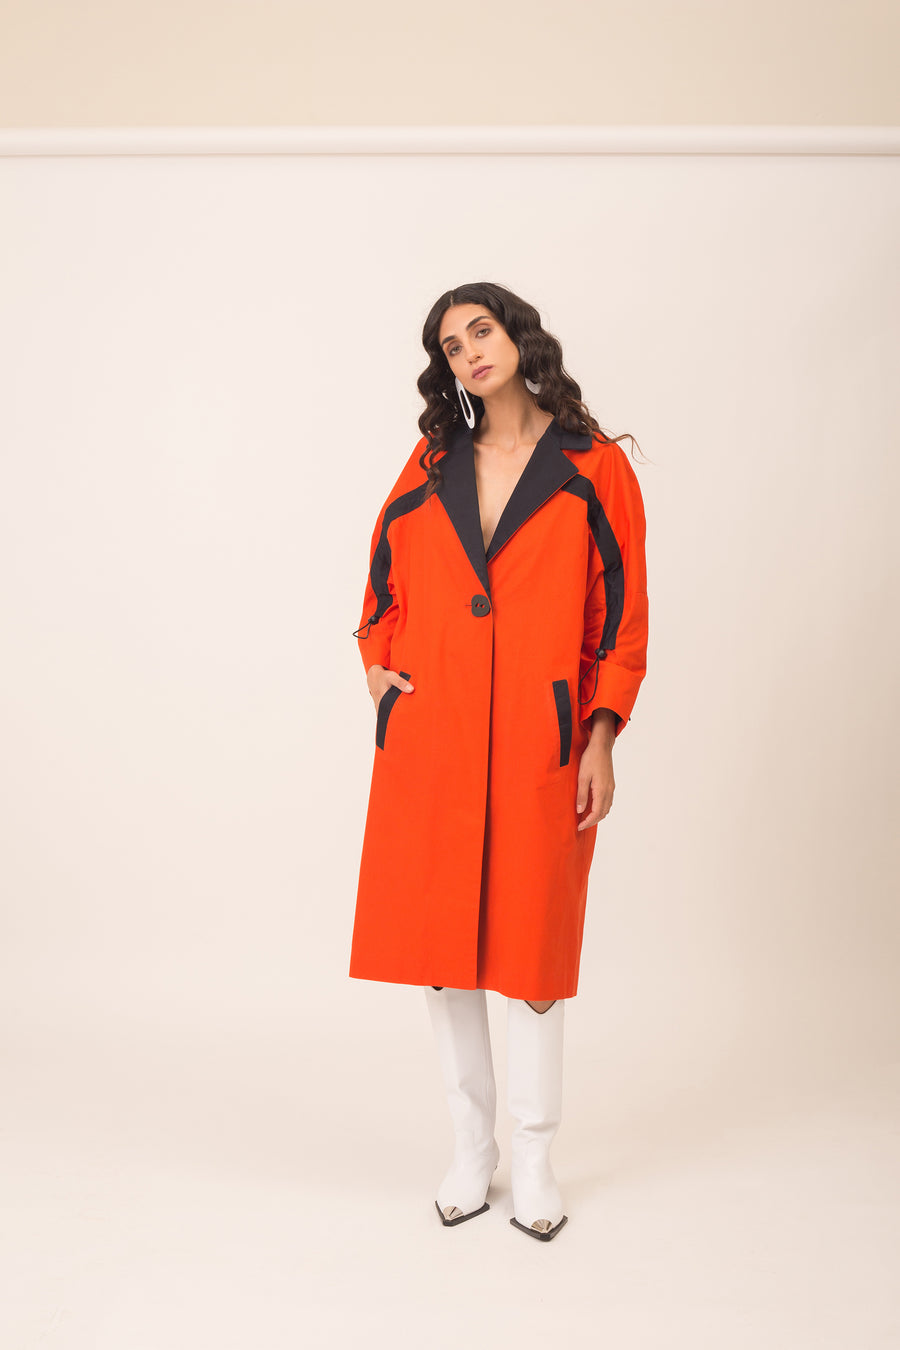 Line Orange Tailored Coat - OFIR IVGI